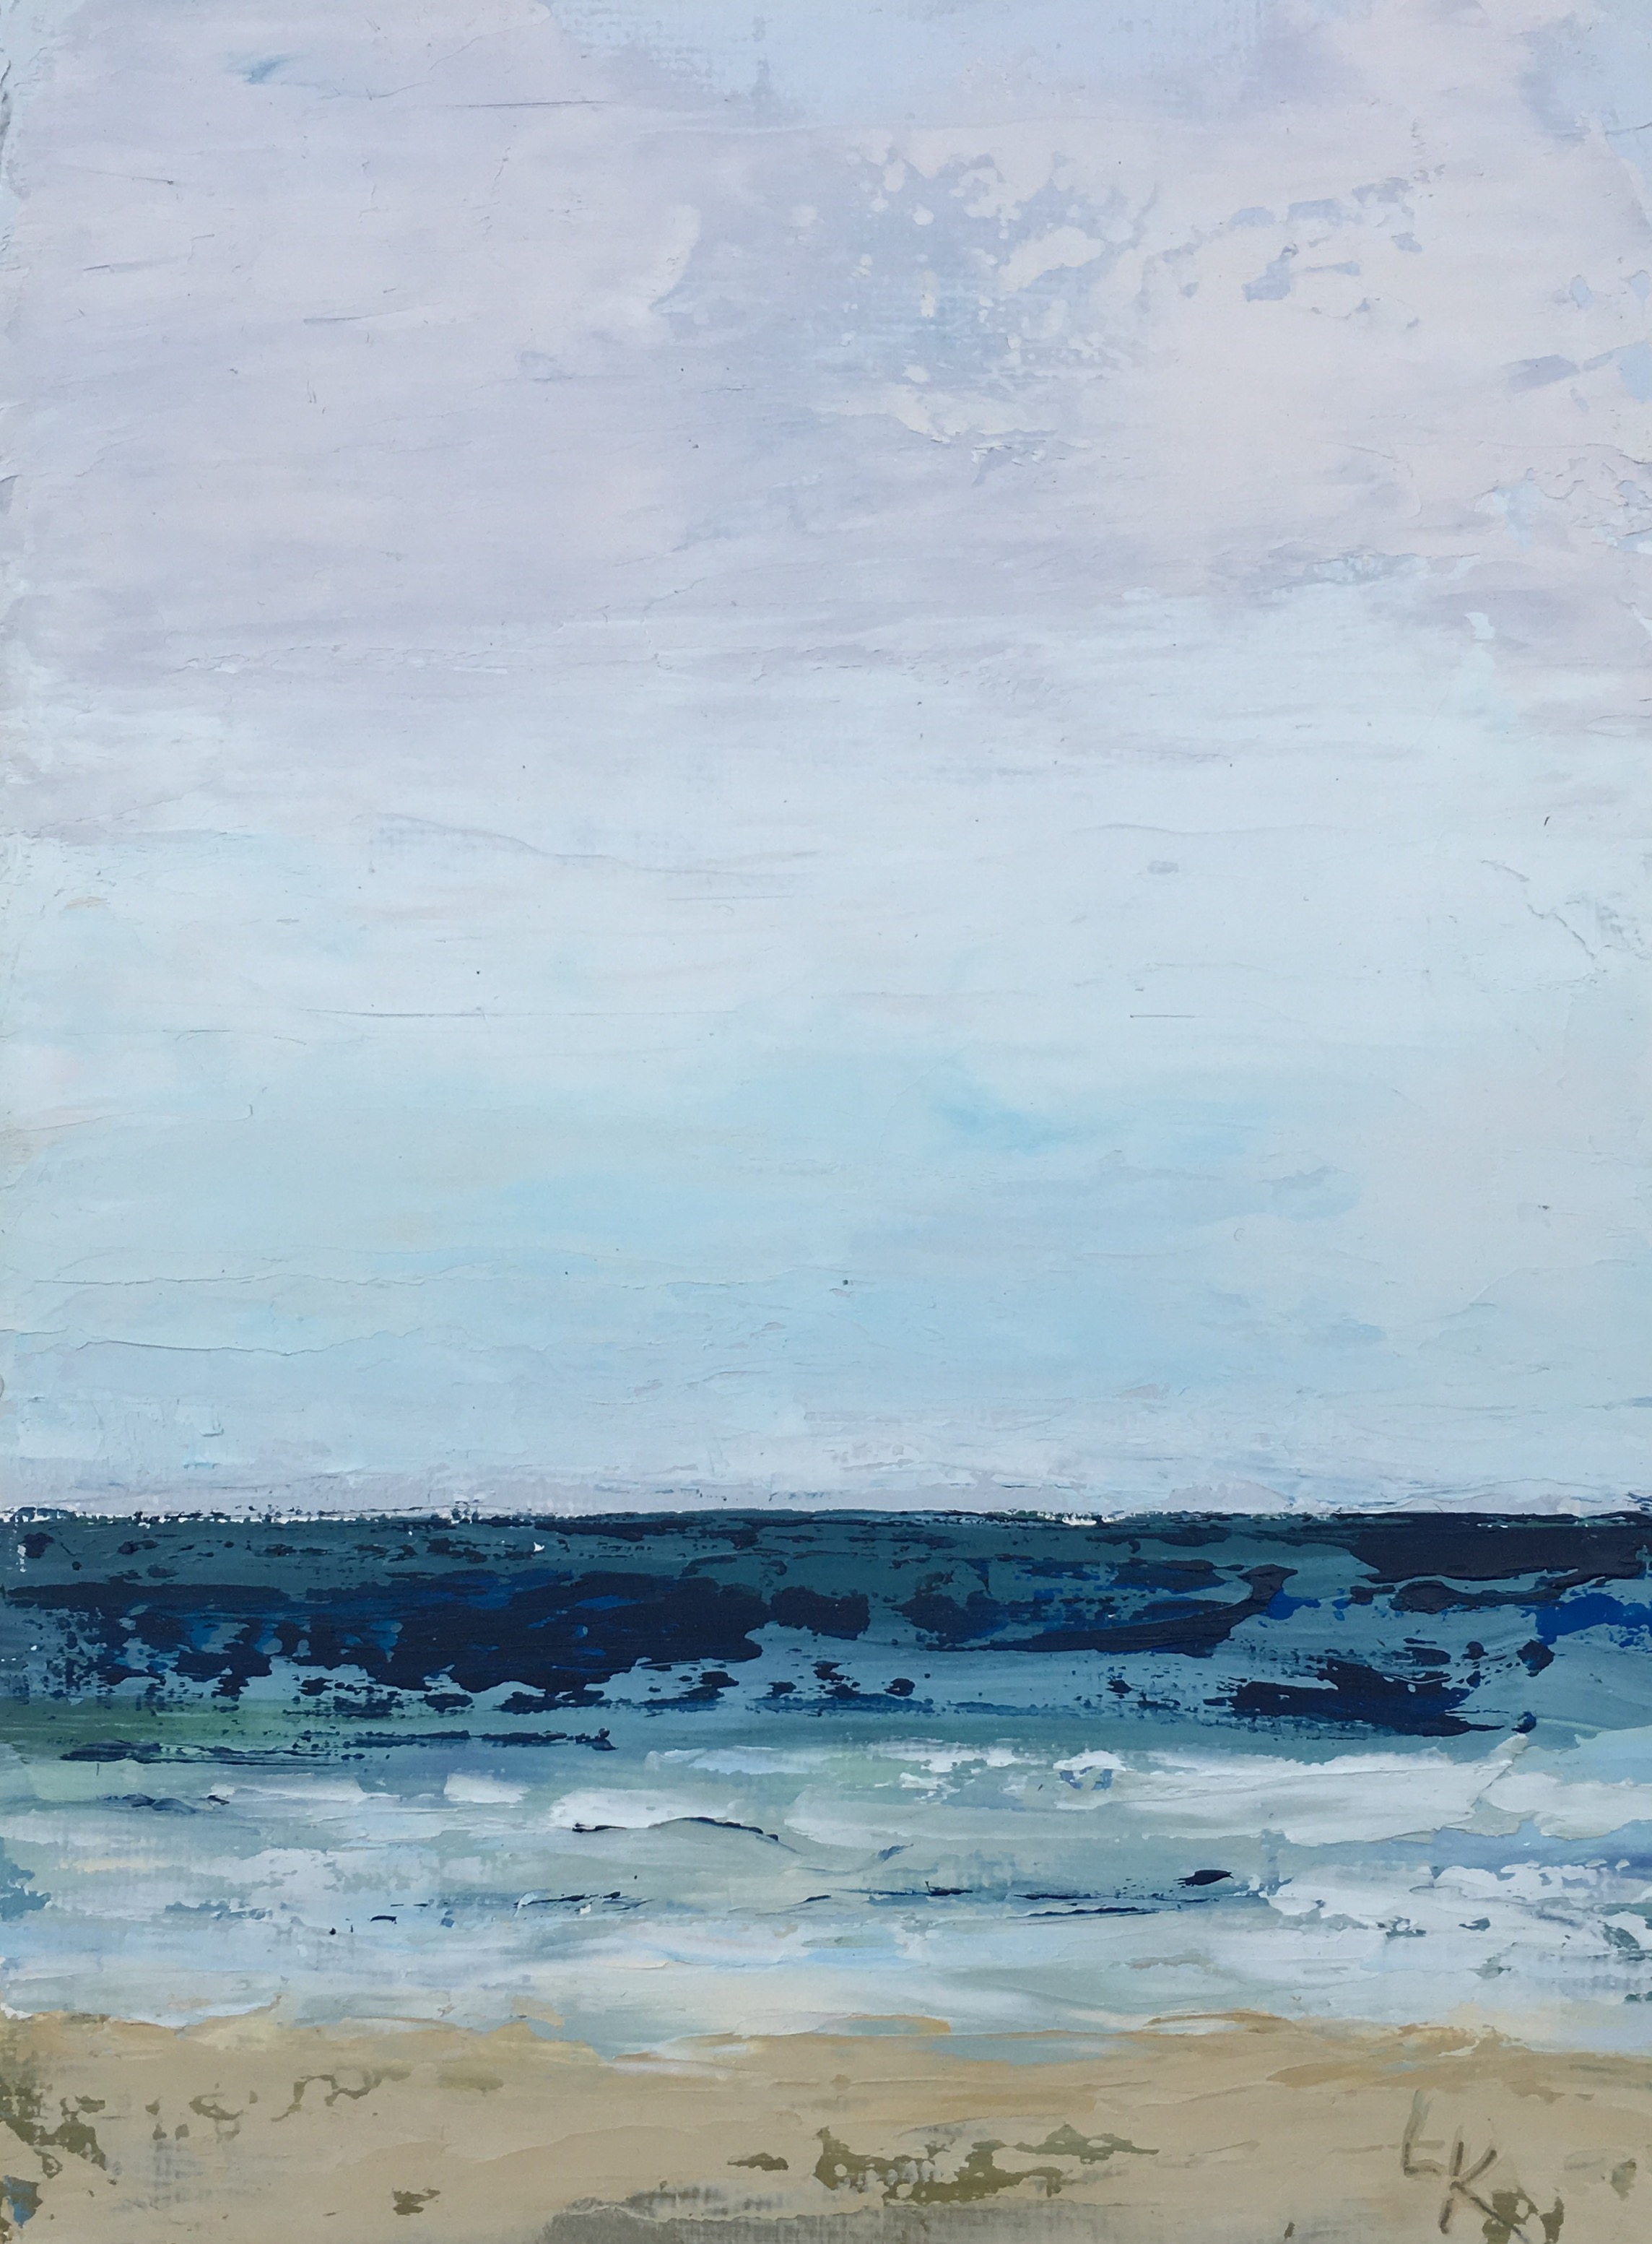 Seascape 11; oil on canvas; 5 x 7